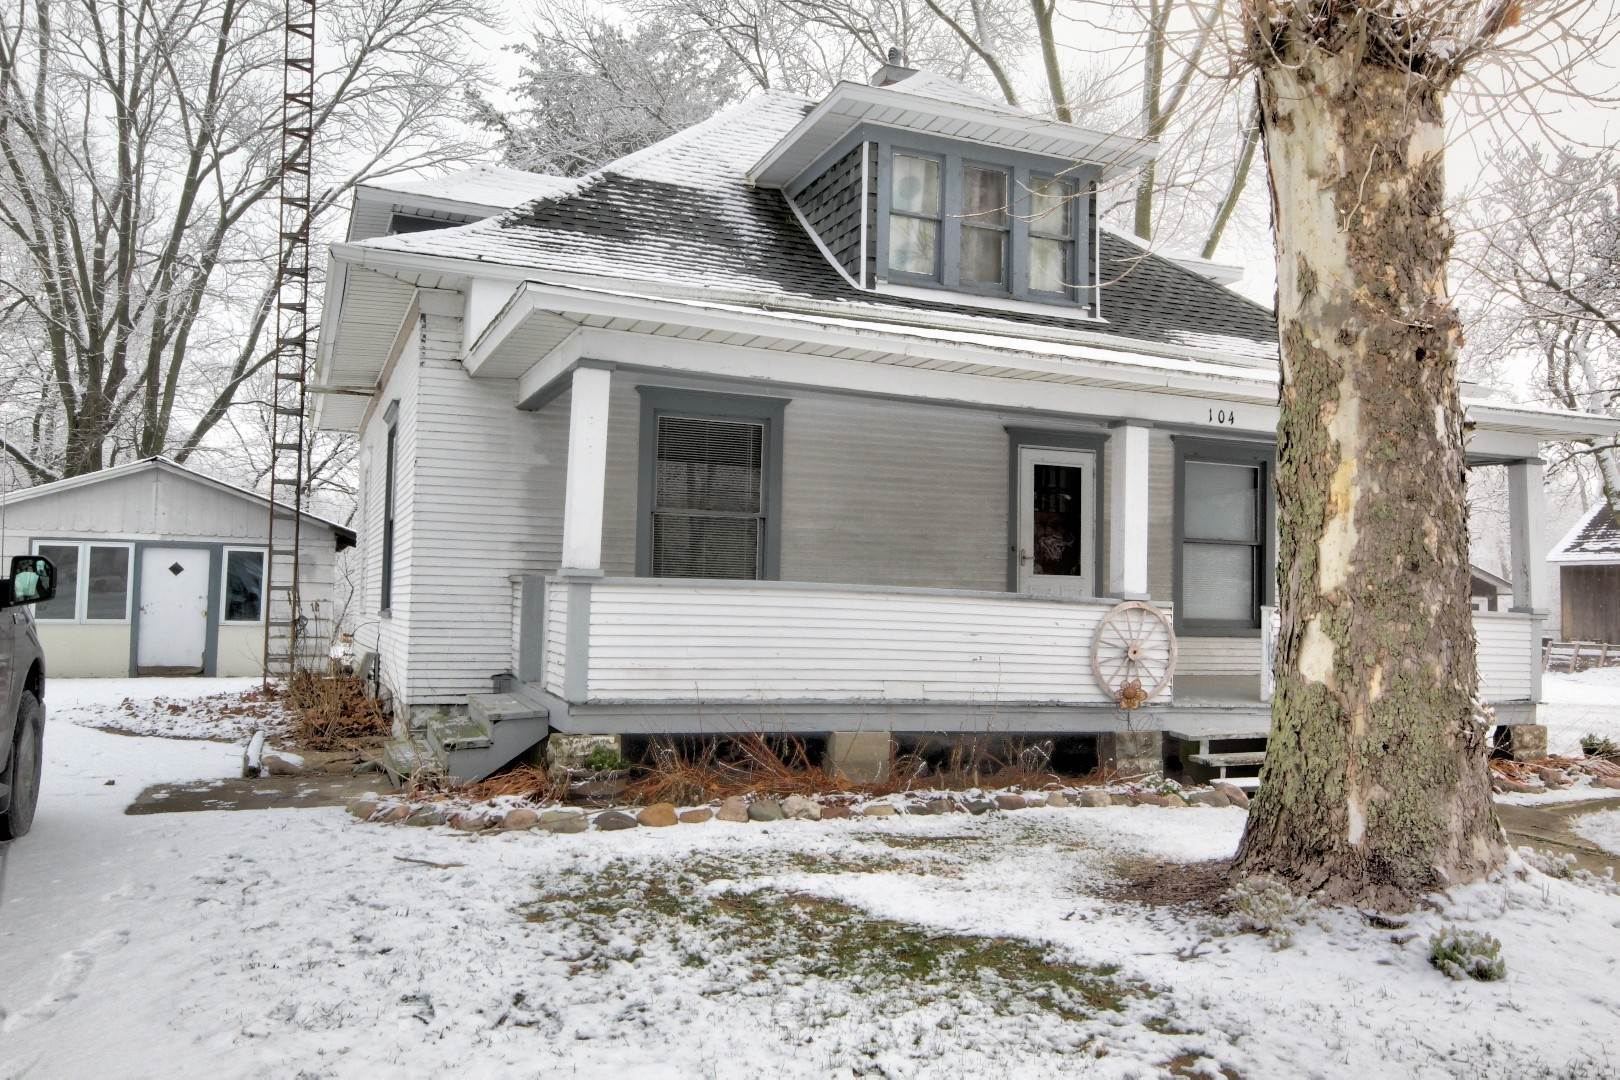 Single Family Homes for Sale at 104 Anderson Street Woodland, Illinois 60974 United States